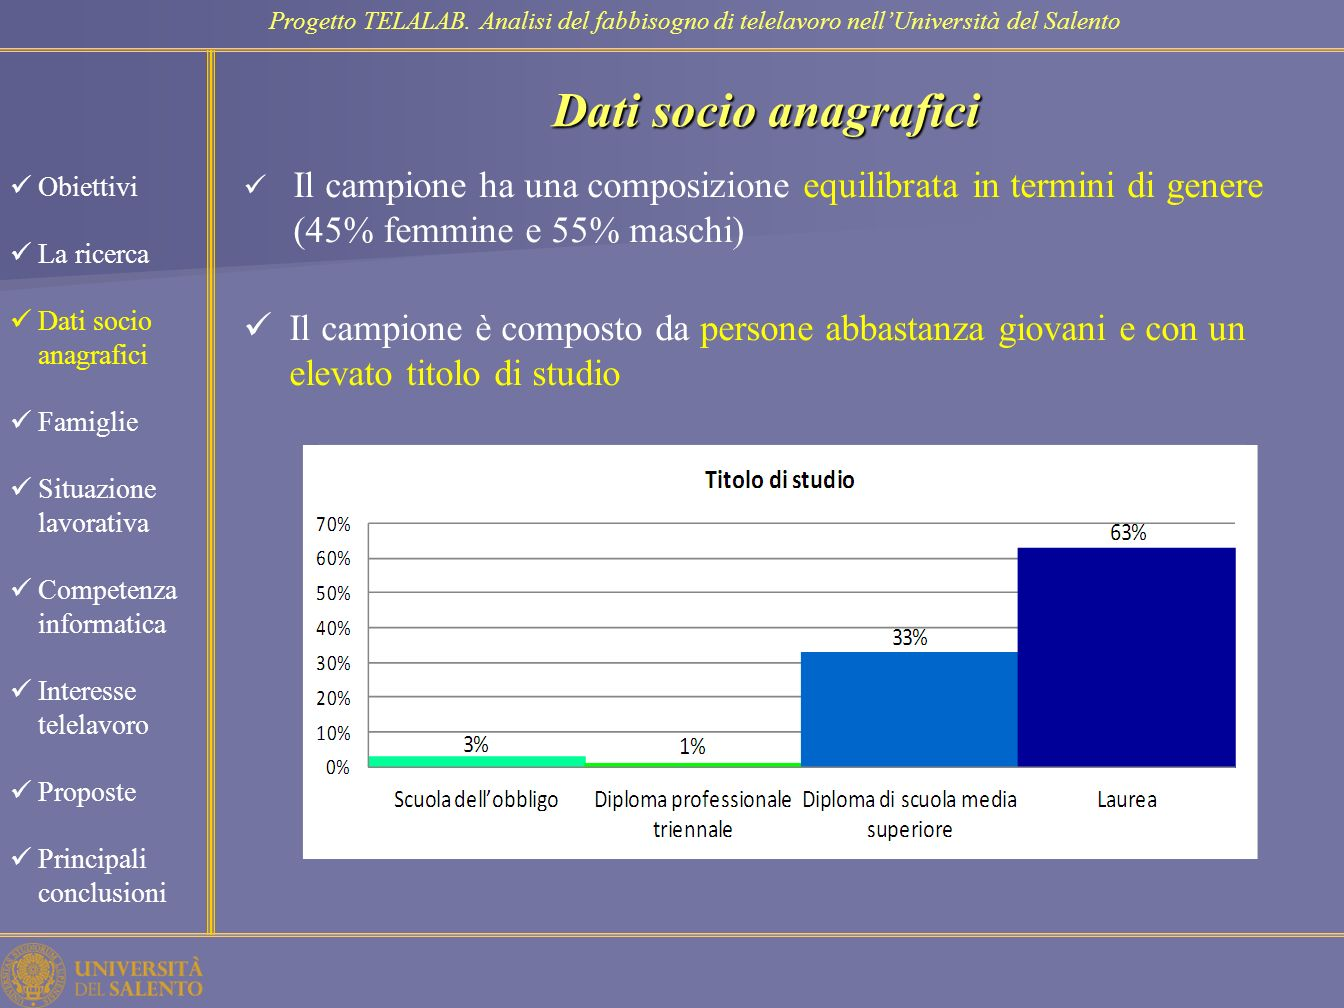 Famiglie Progetto TELALAB.